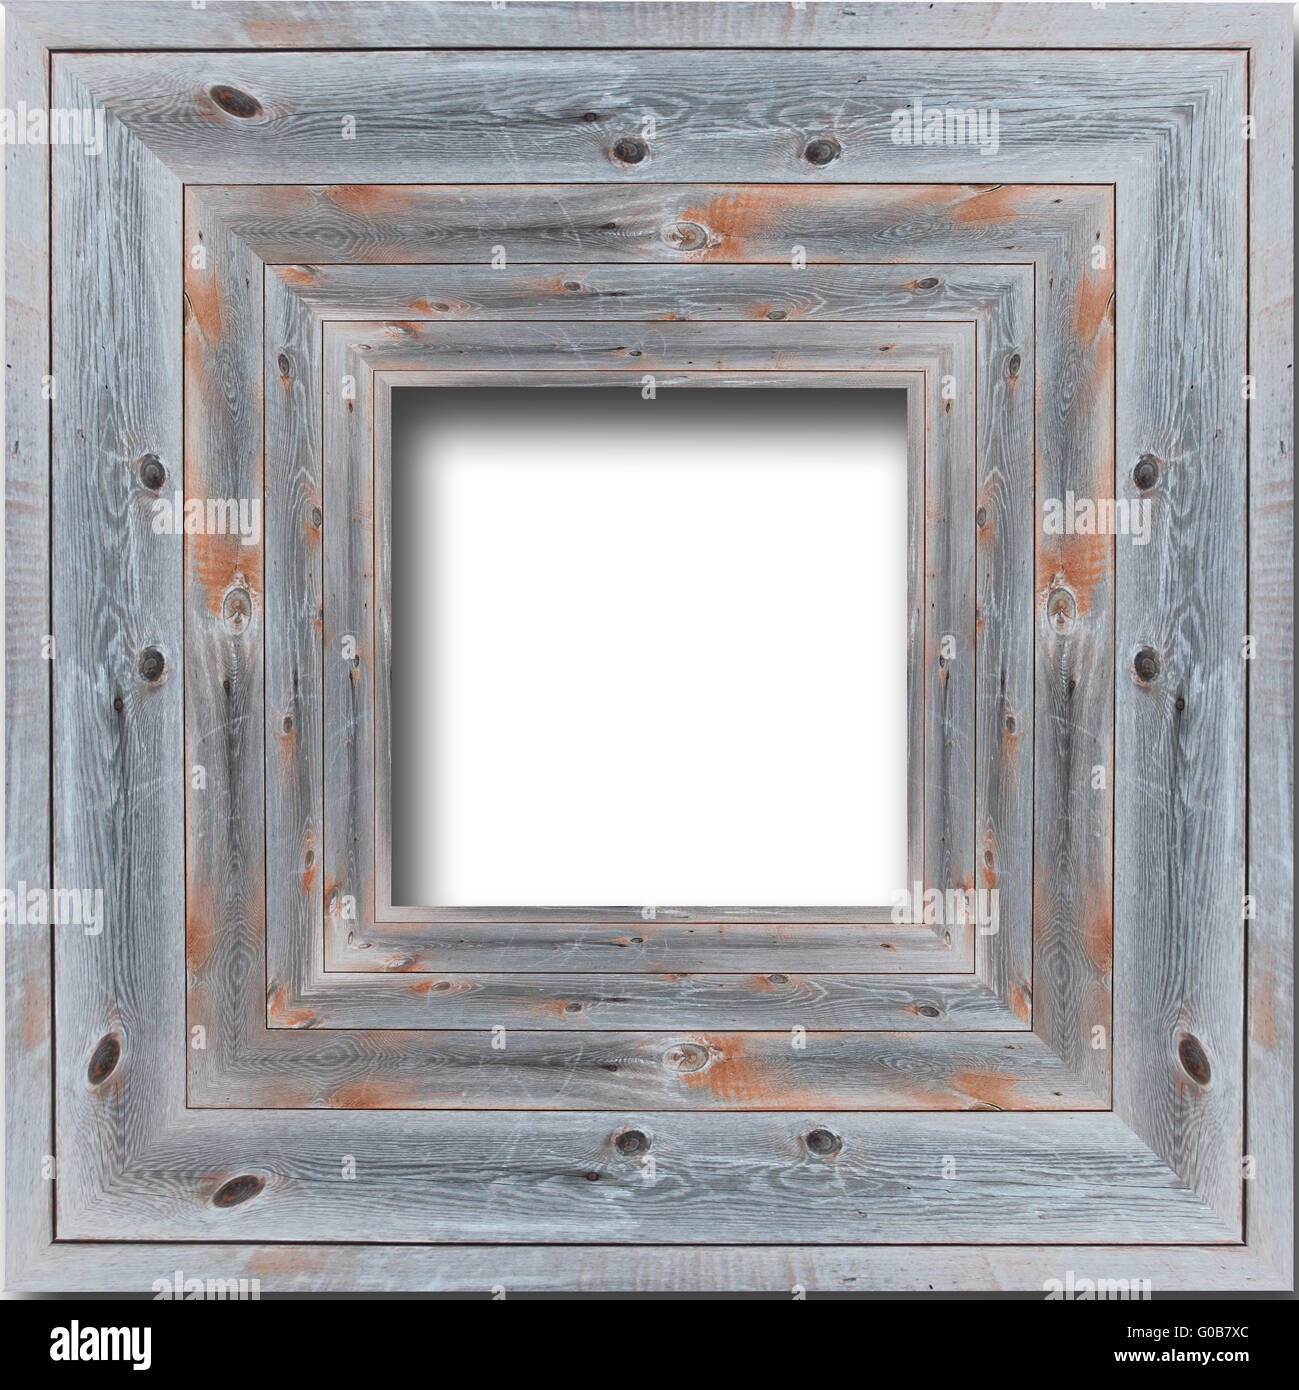 nice wooden frame isolated on the white background - Stock Image